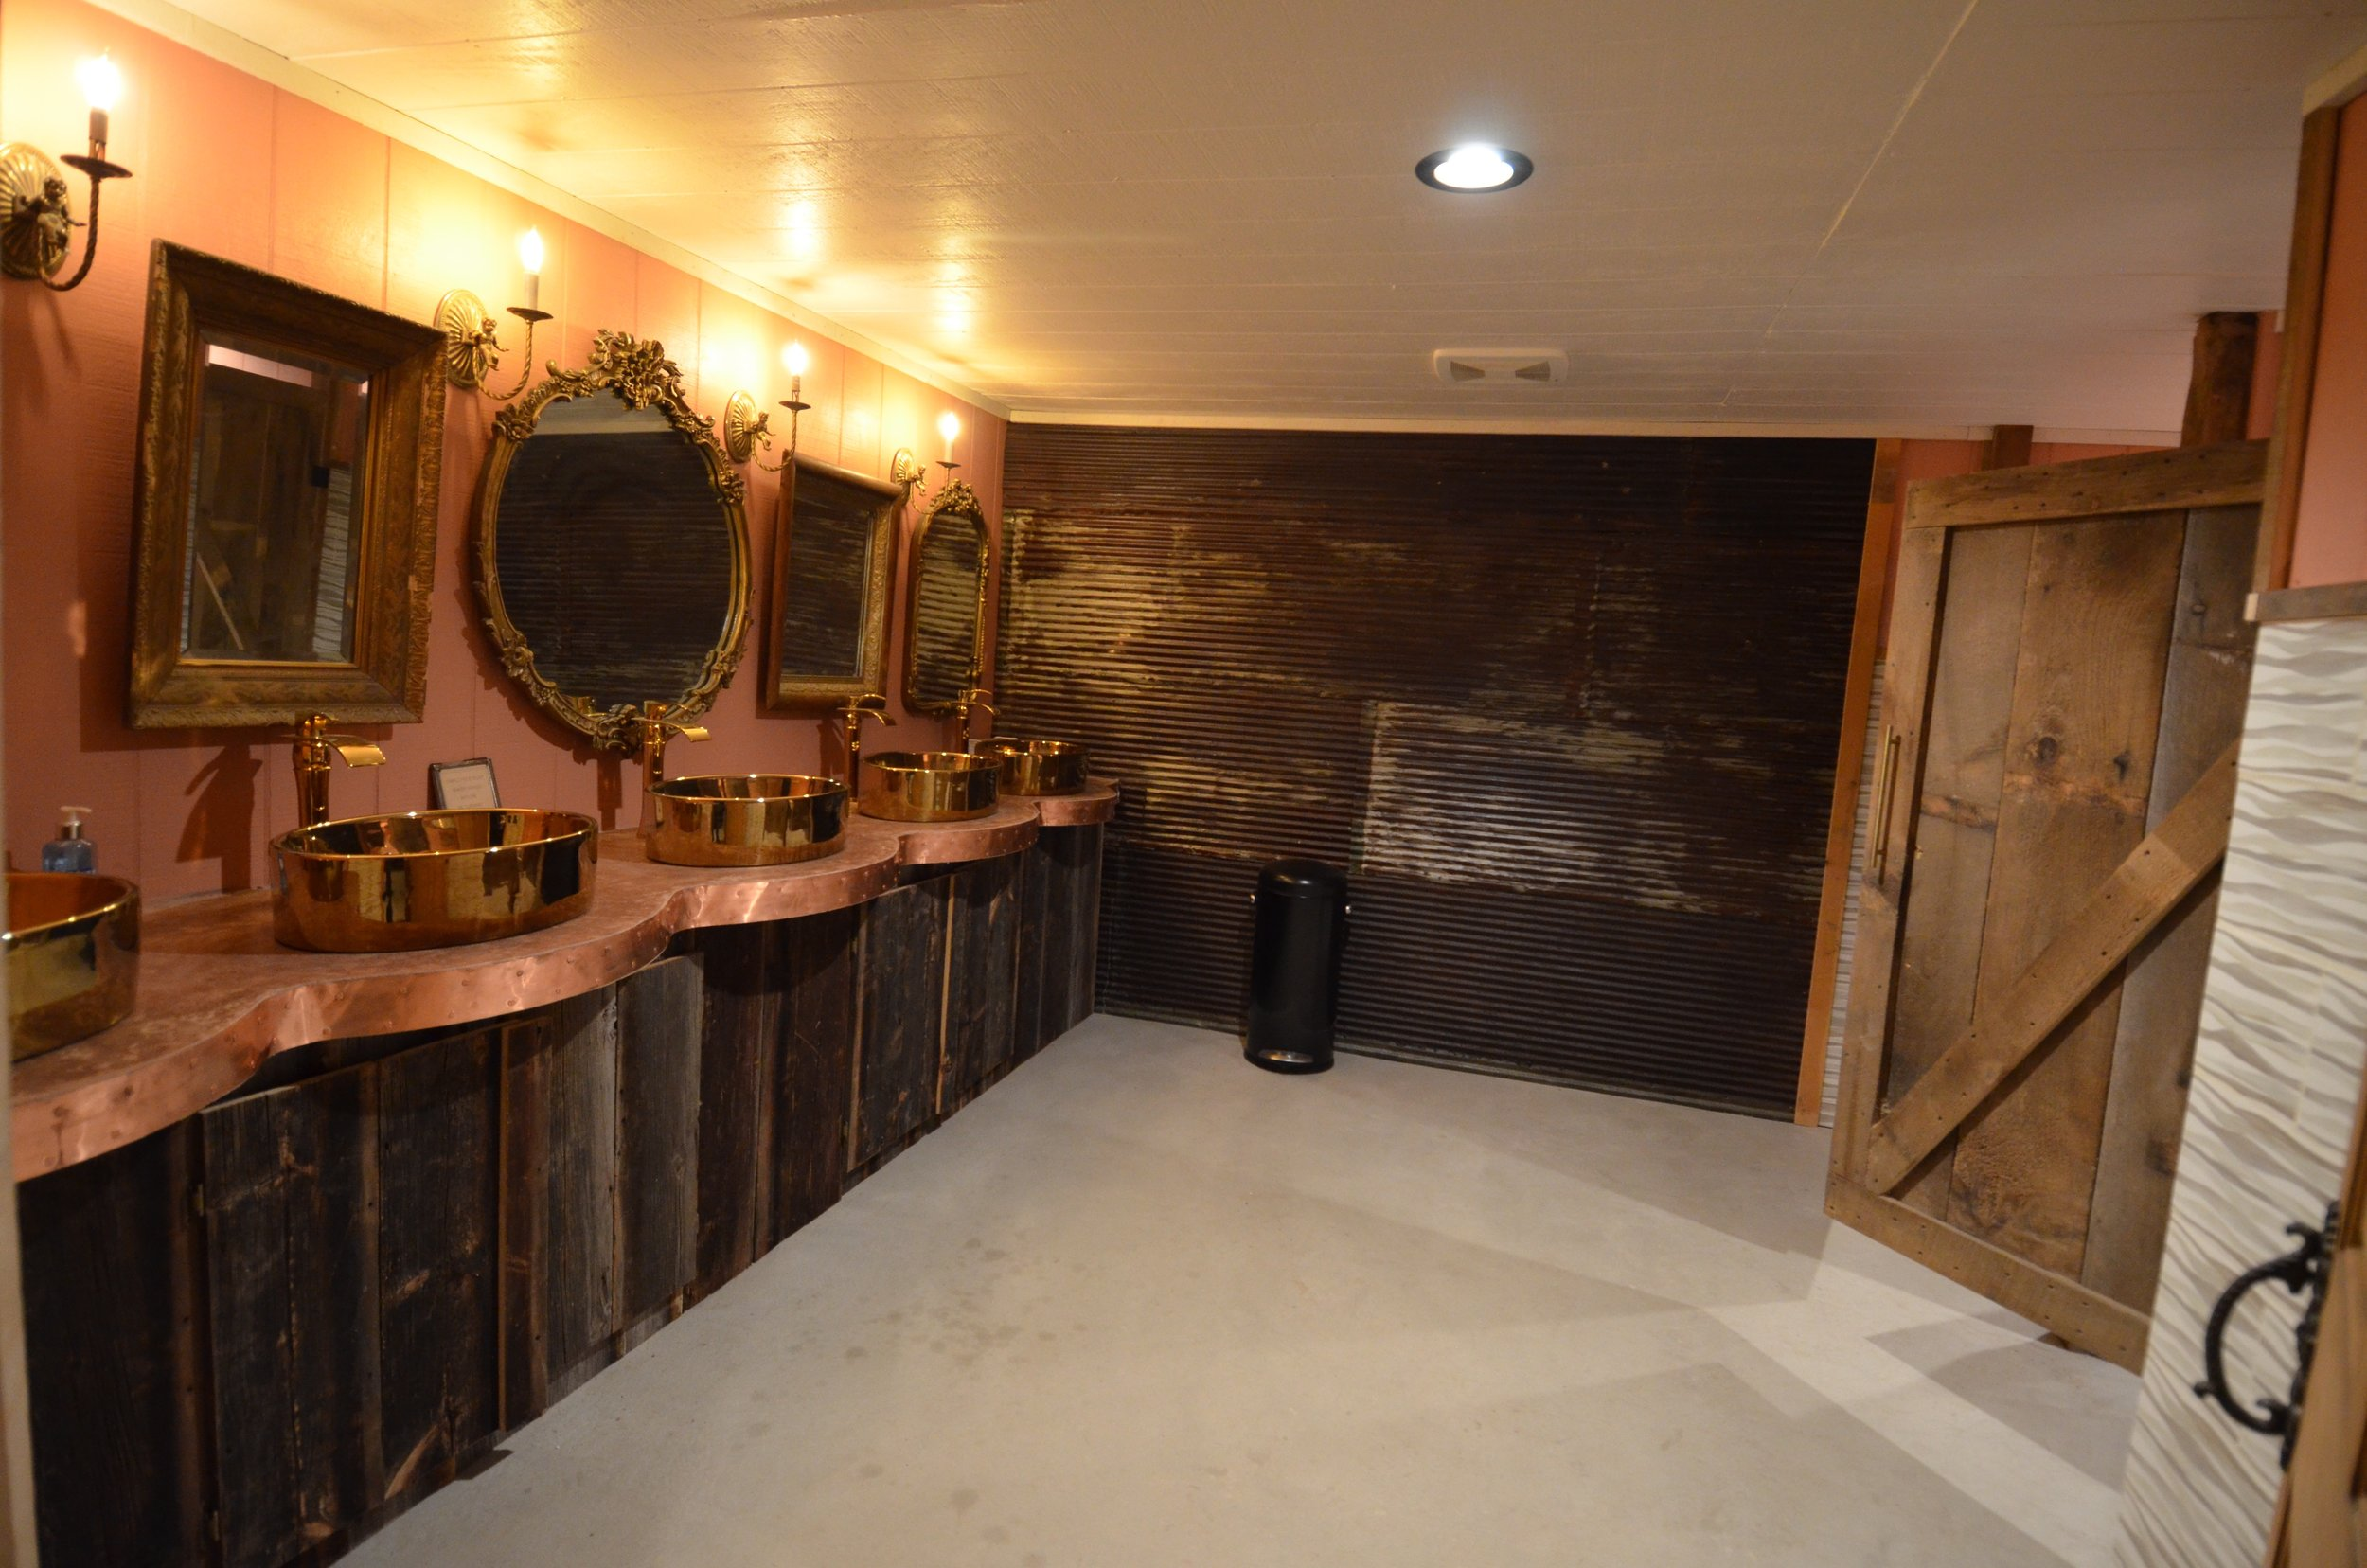 Rustic but elegant bathrooms in our barn